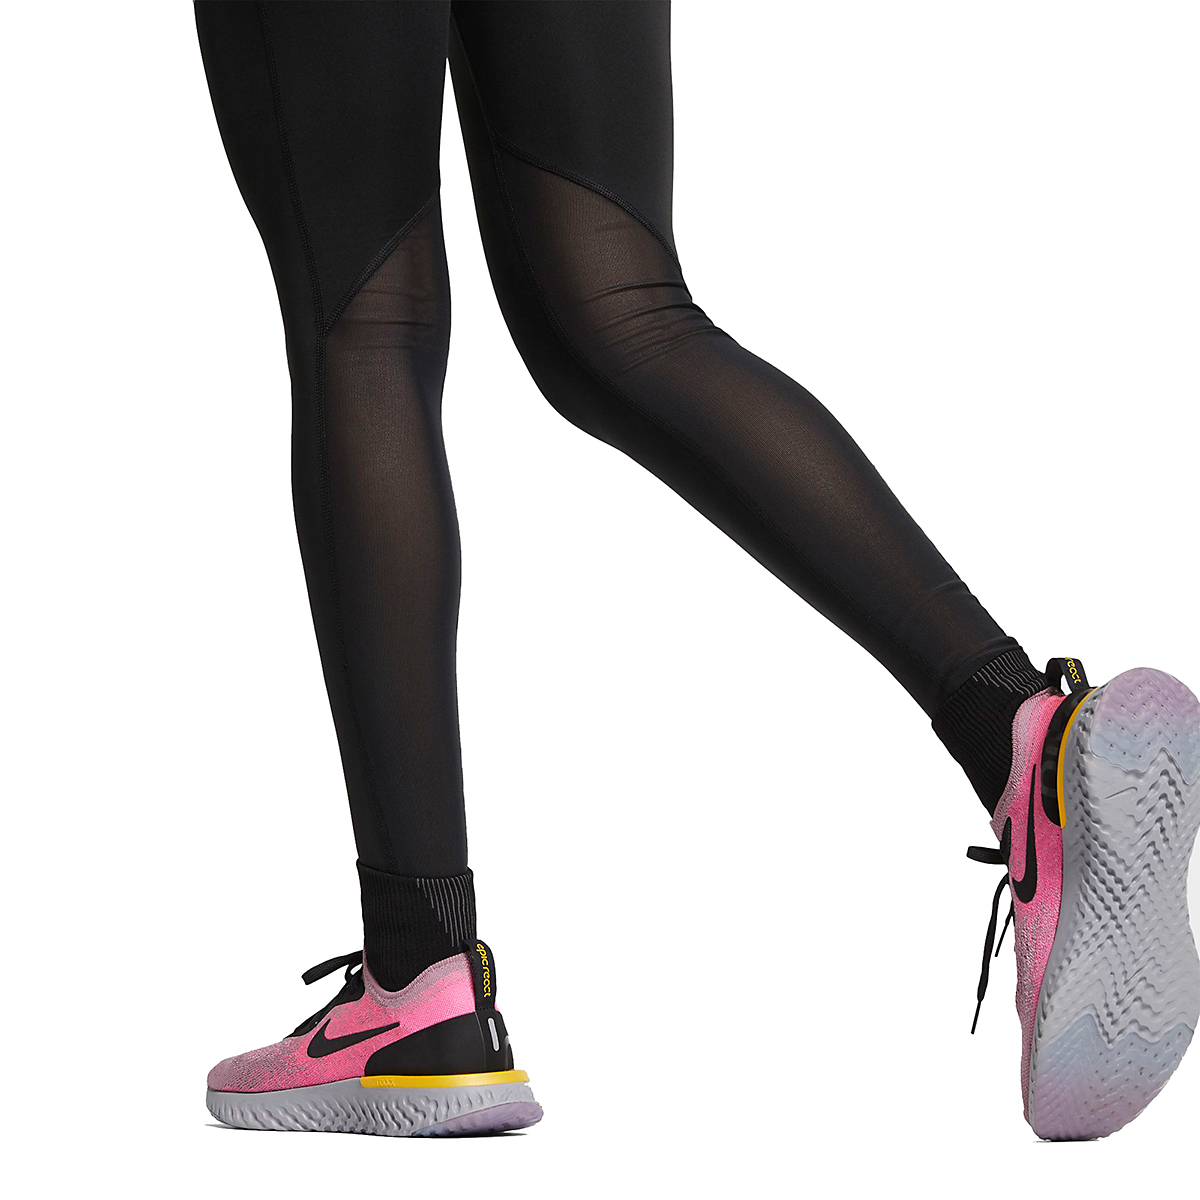 Women's Nike Fast Running Tights - Color: Black - Size: XS, Black, large, image 4